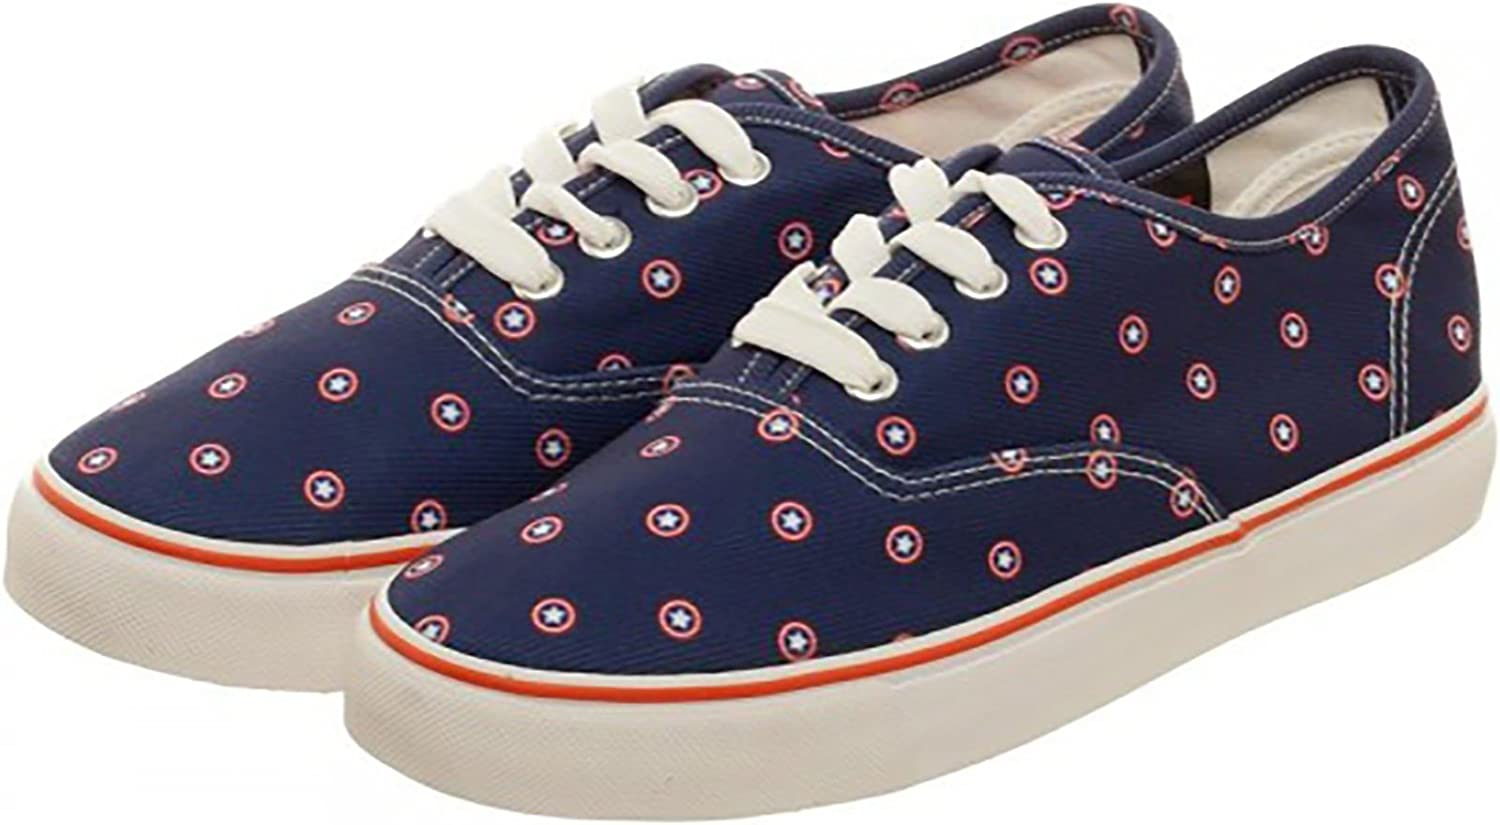 Marvel Captain American Navy Womens Canvas shoes Size 6.5